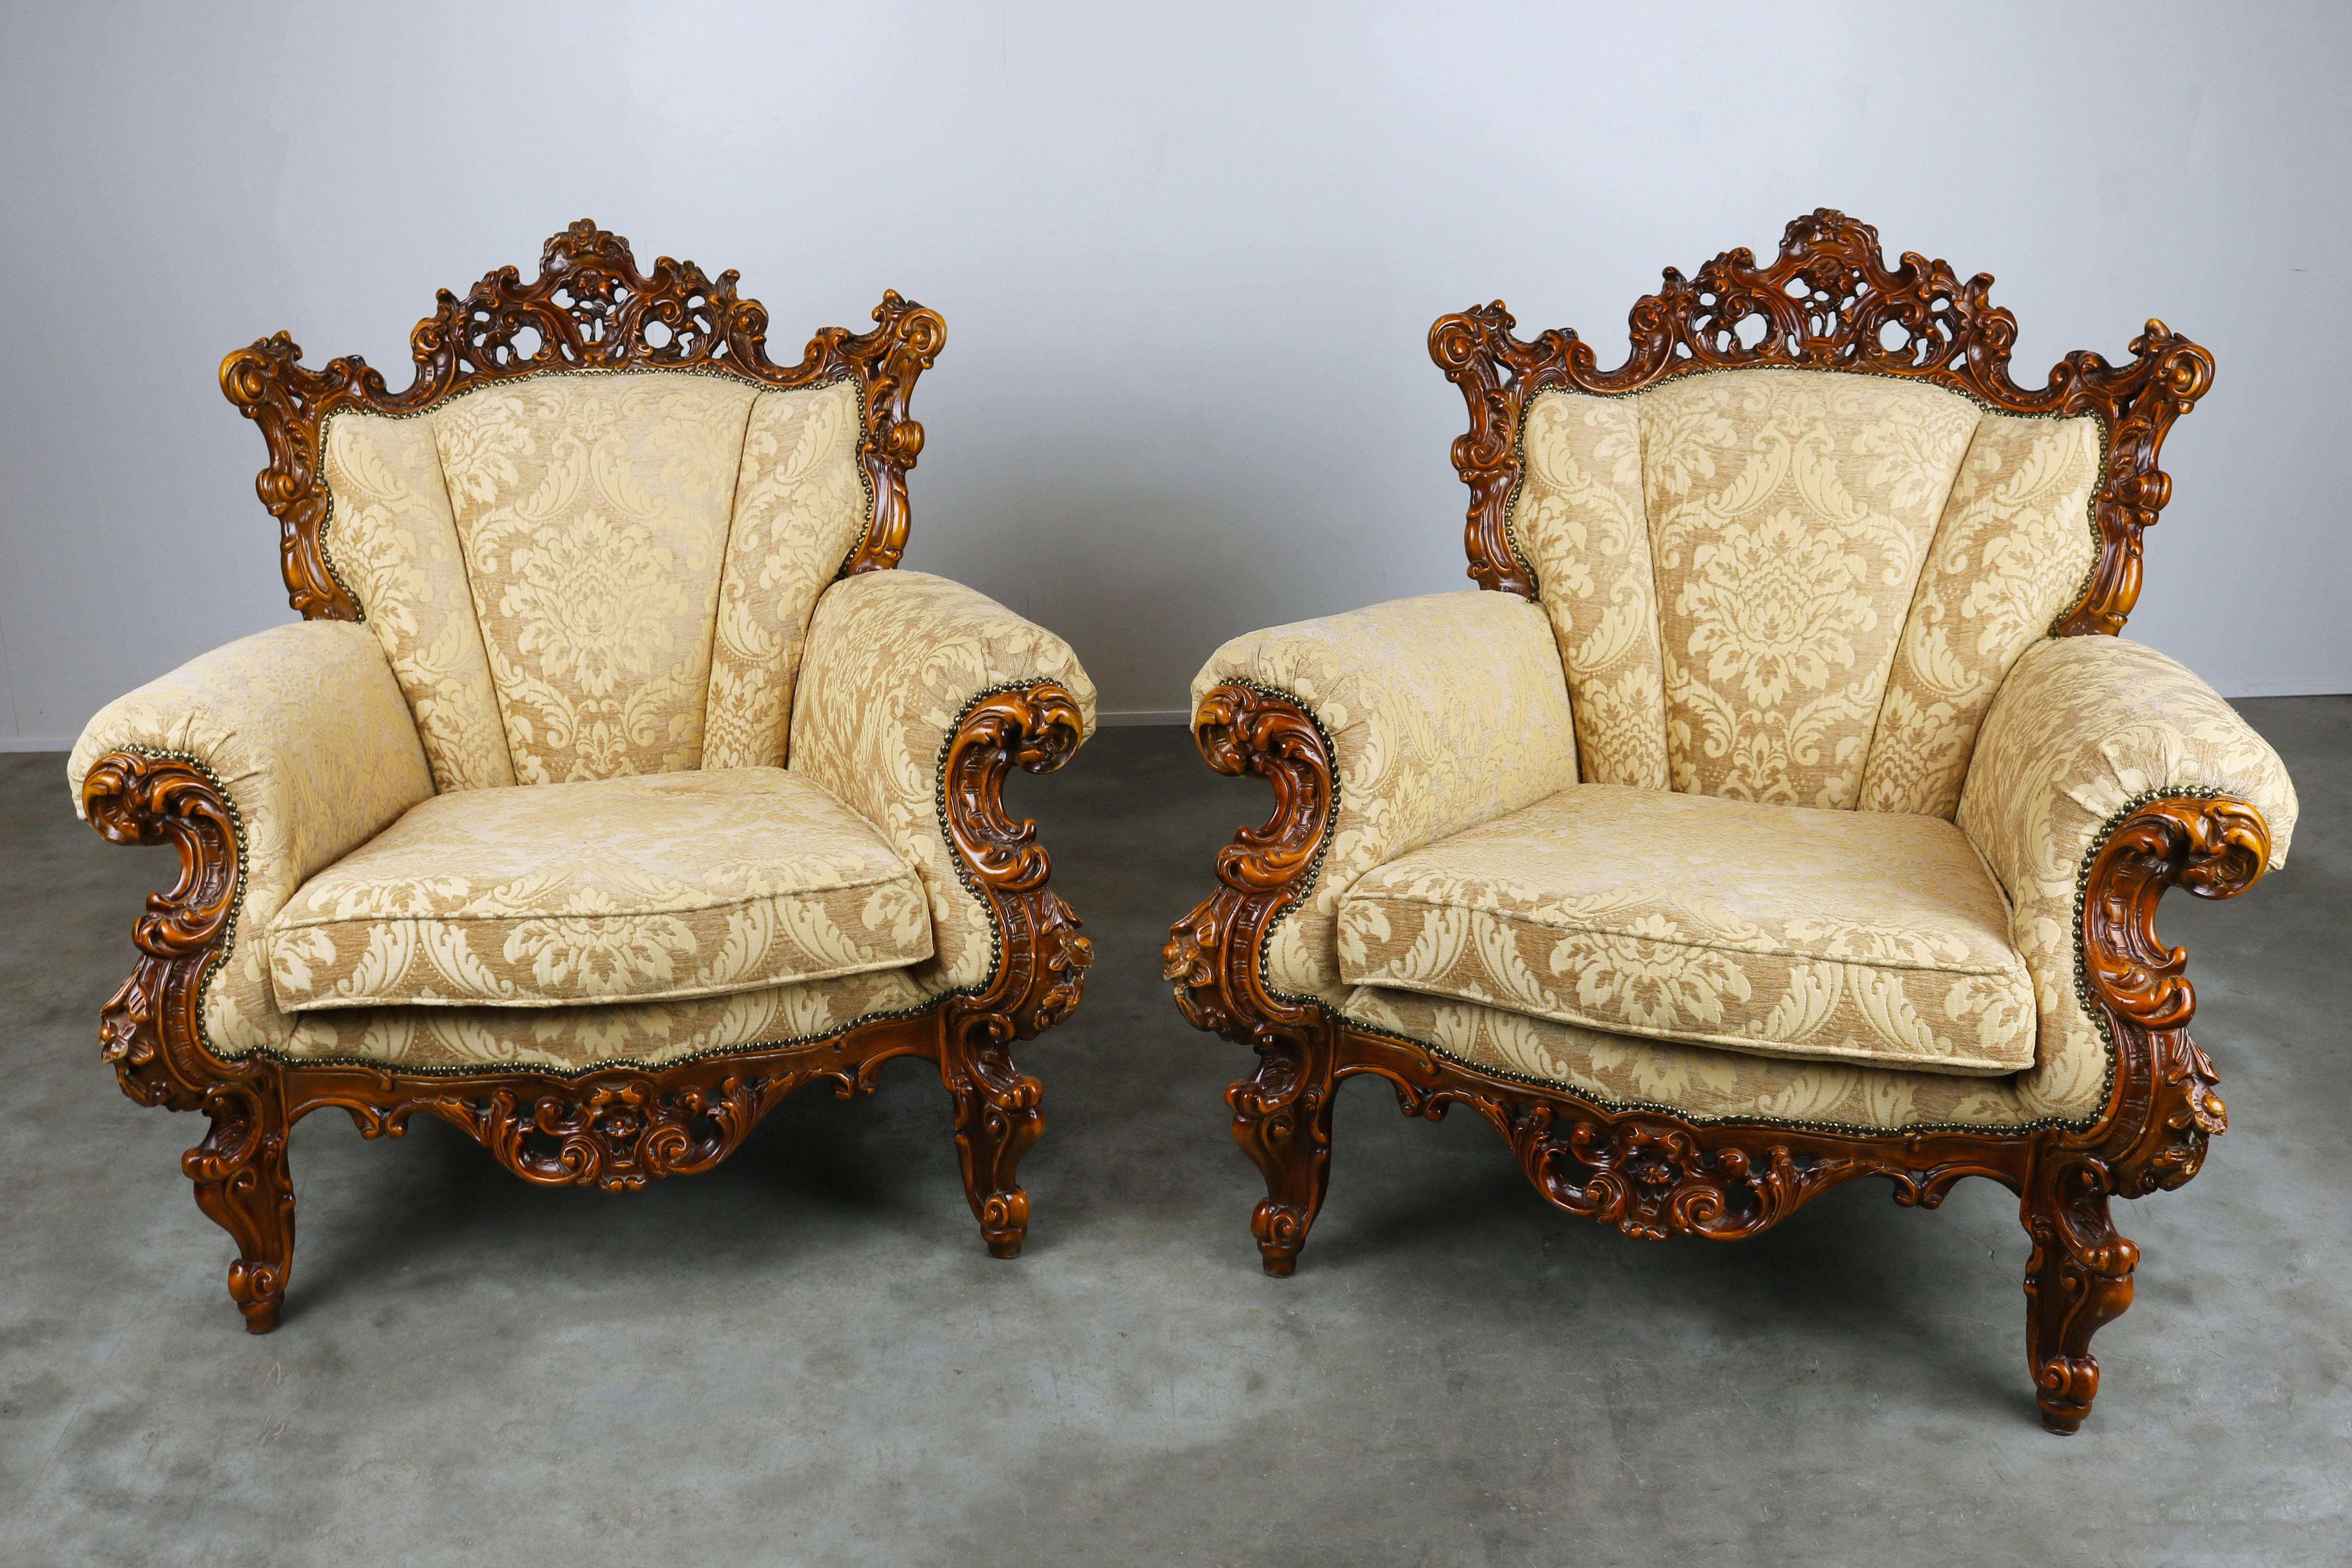 Great Luxurious Antique Italian Lounge Chairs In Rococo / Baroque Style Brown  Beige For Sale 2